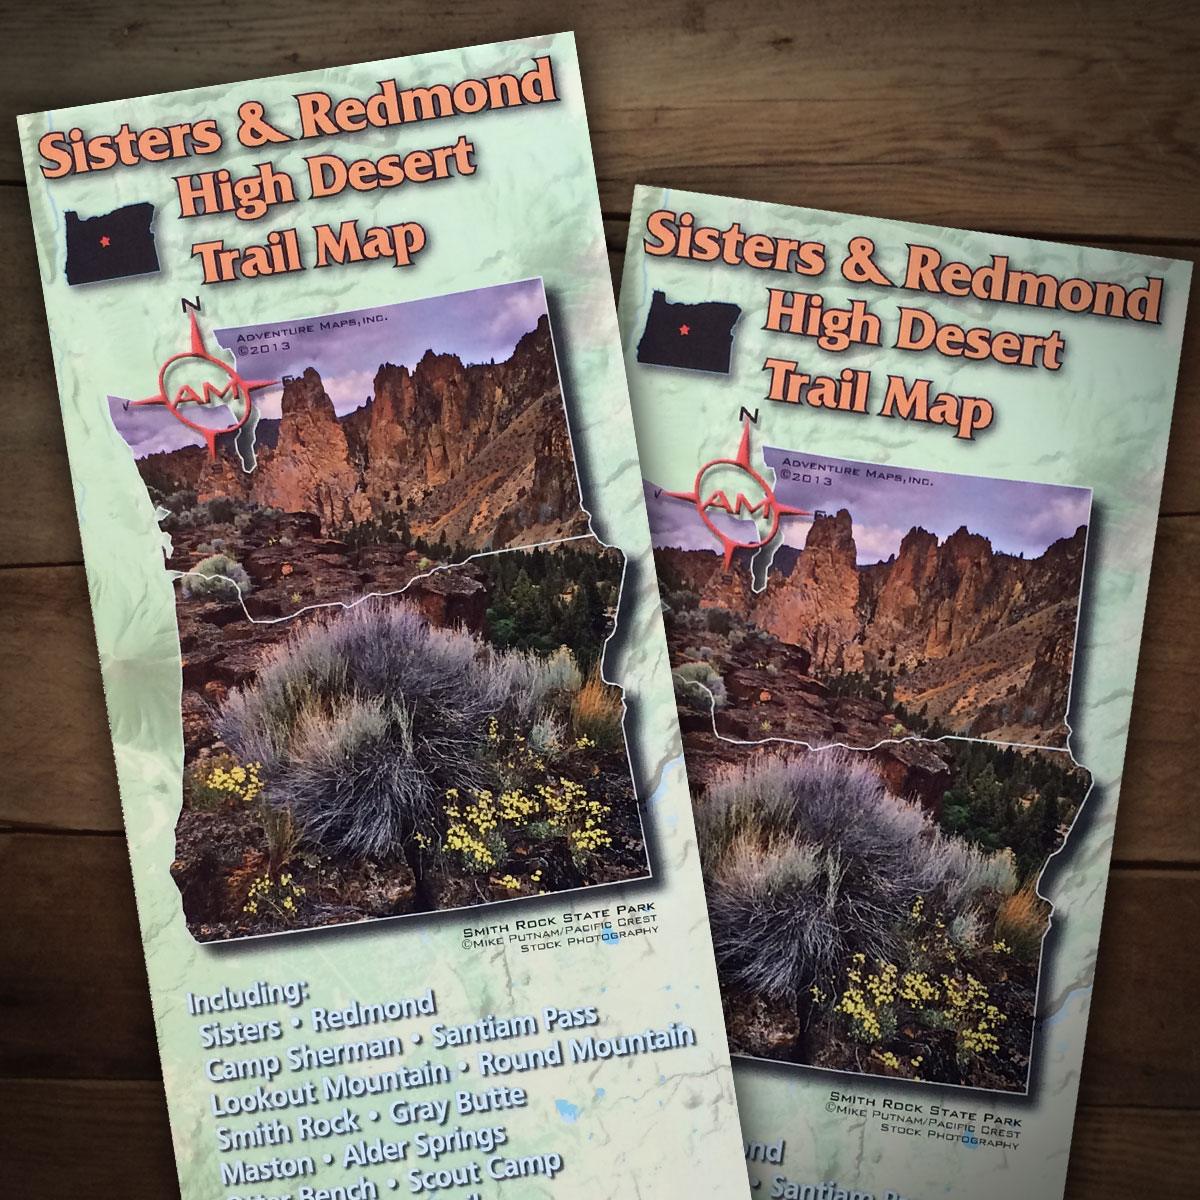 Sisters & Redmond High Desert Trail Map